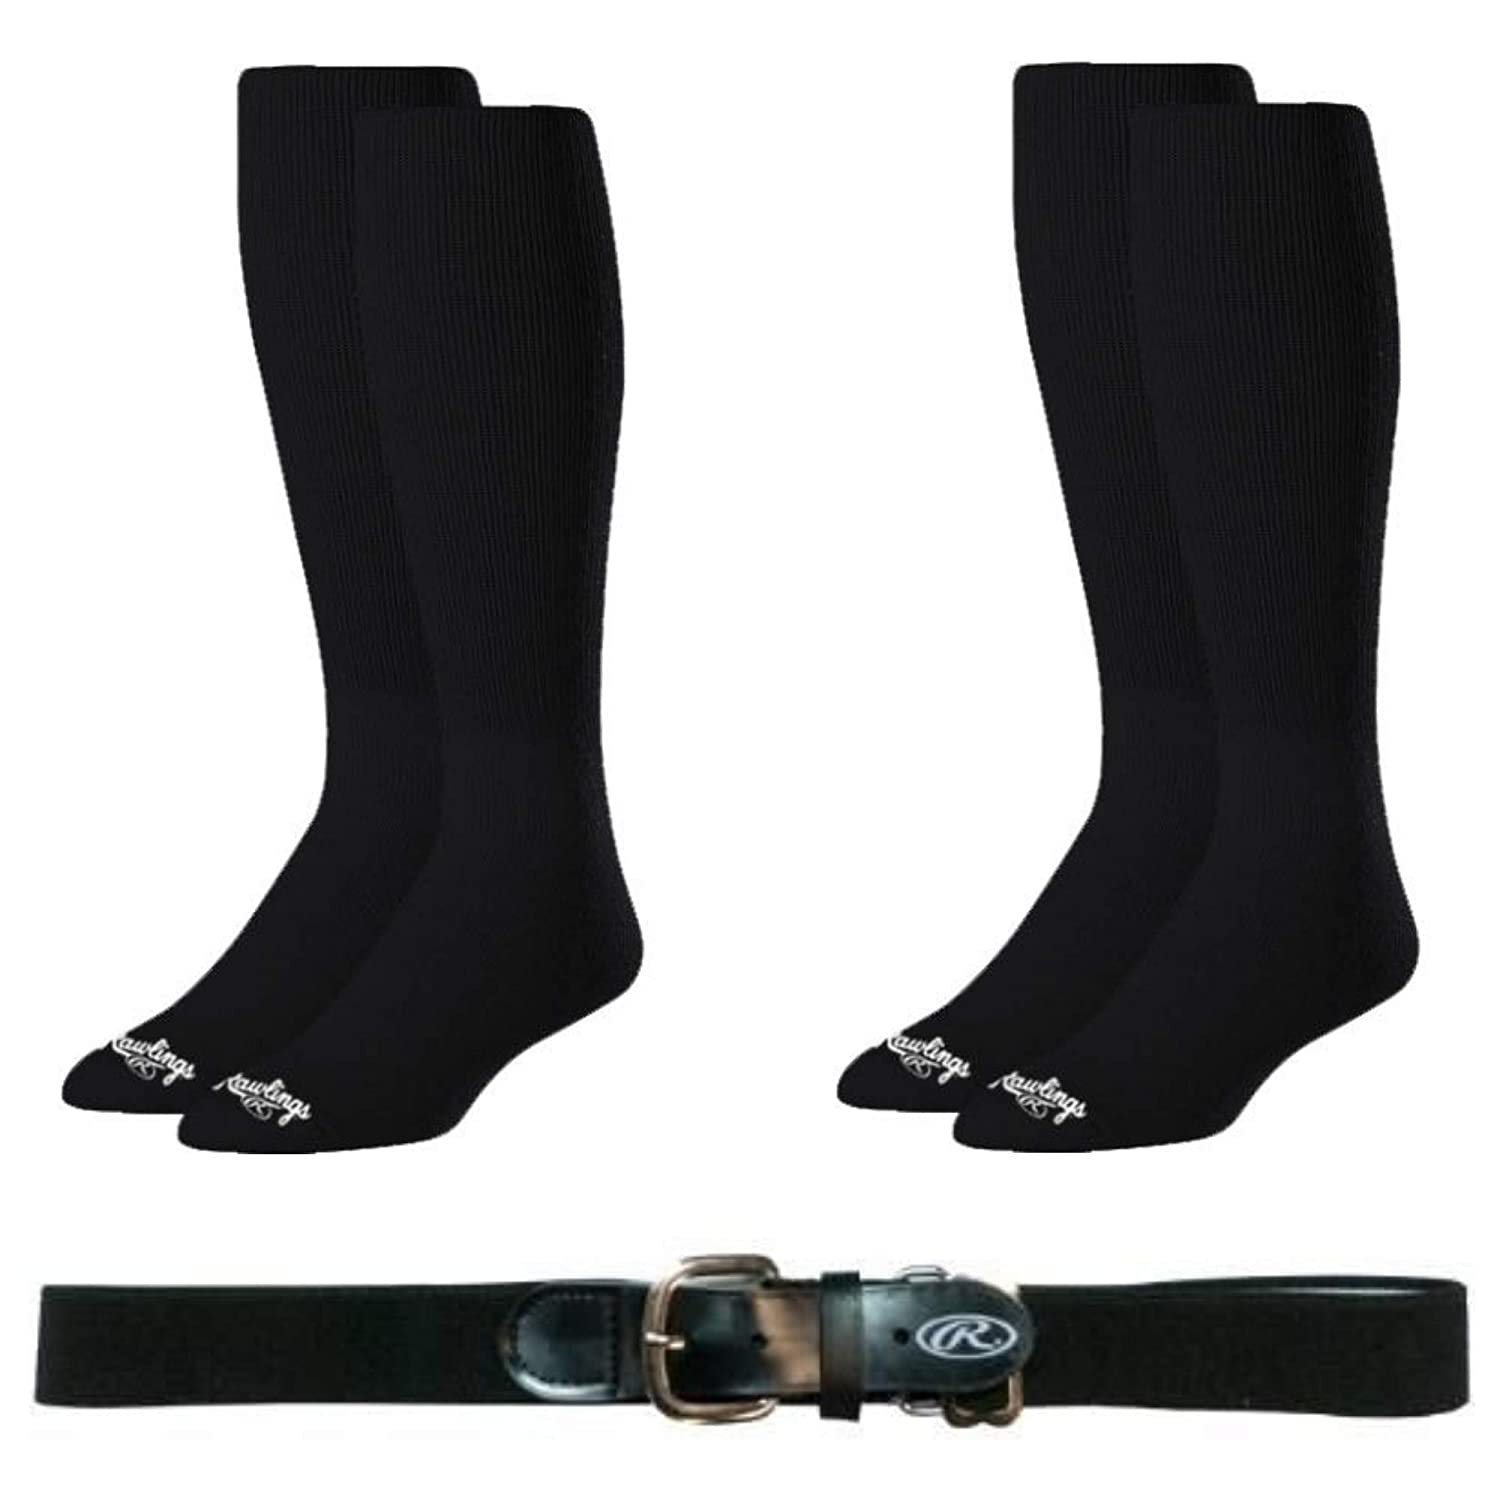 Rawlings Baseball Softball Socks (2-Pairs) And Belt Combo - Available In Black, Red, Navy, Royal Blue Colors